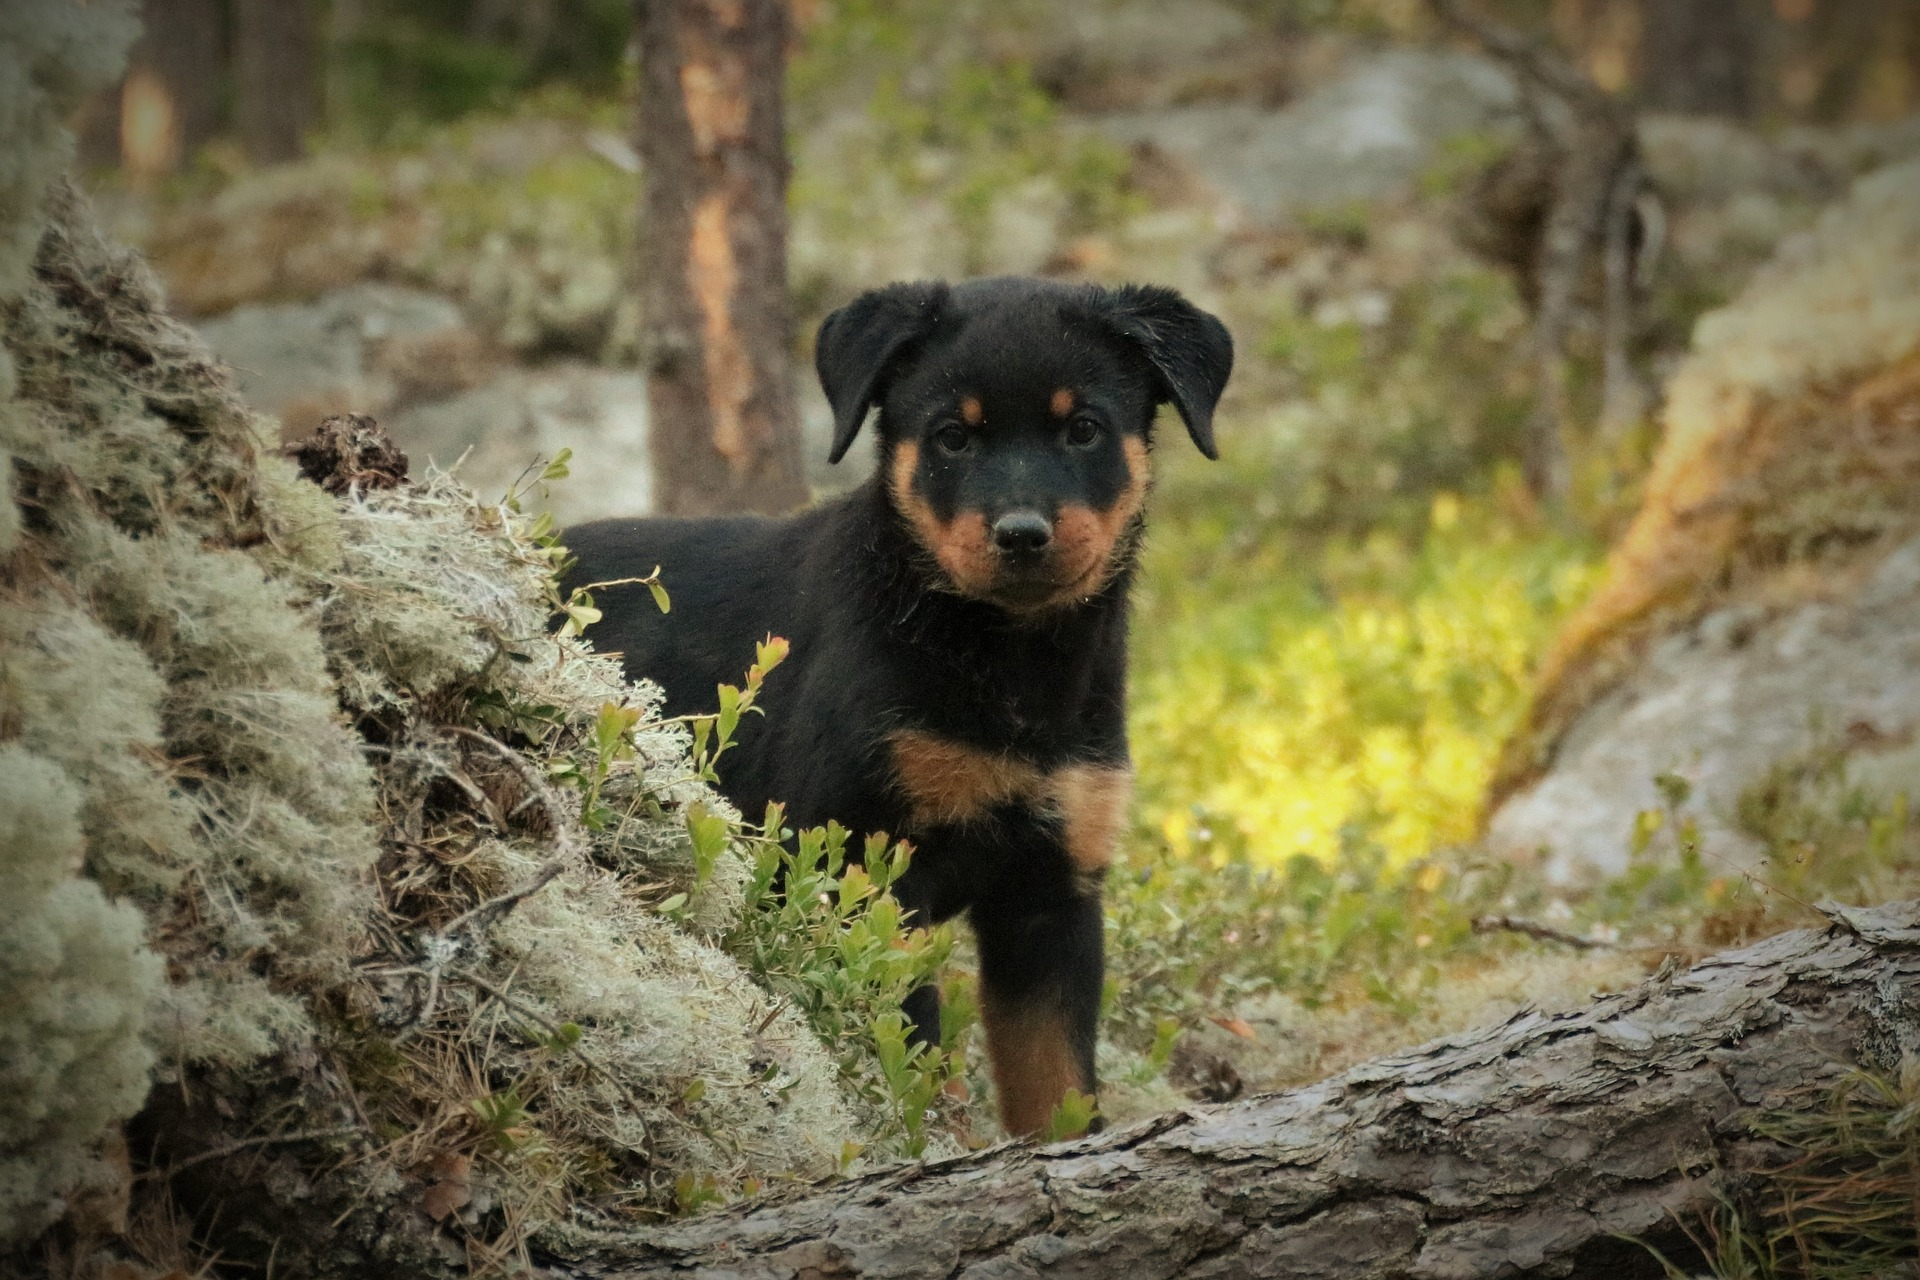 Did you know that Rottweilers are #puppy #funny #german #rottweilers #facts #names #Training #mix #quotes #photography #tattoo #Memes #Art #american #Albino #attack #big #withtail #Care #cute #aesthetic #husky #signs #dog #drawing #andkids #tips #female #clothes #scary #pitbull #forsale #collar #mean #painting #wallpaper #lab #dobermancross